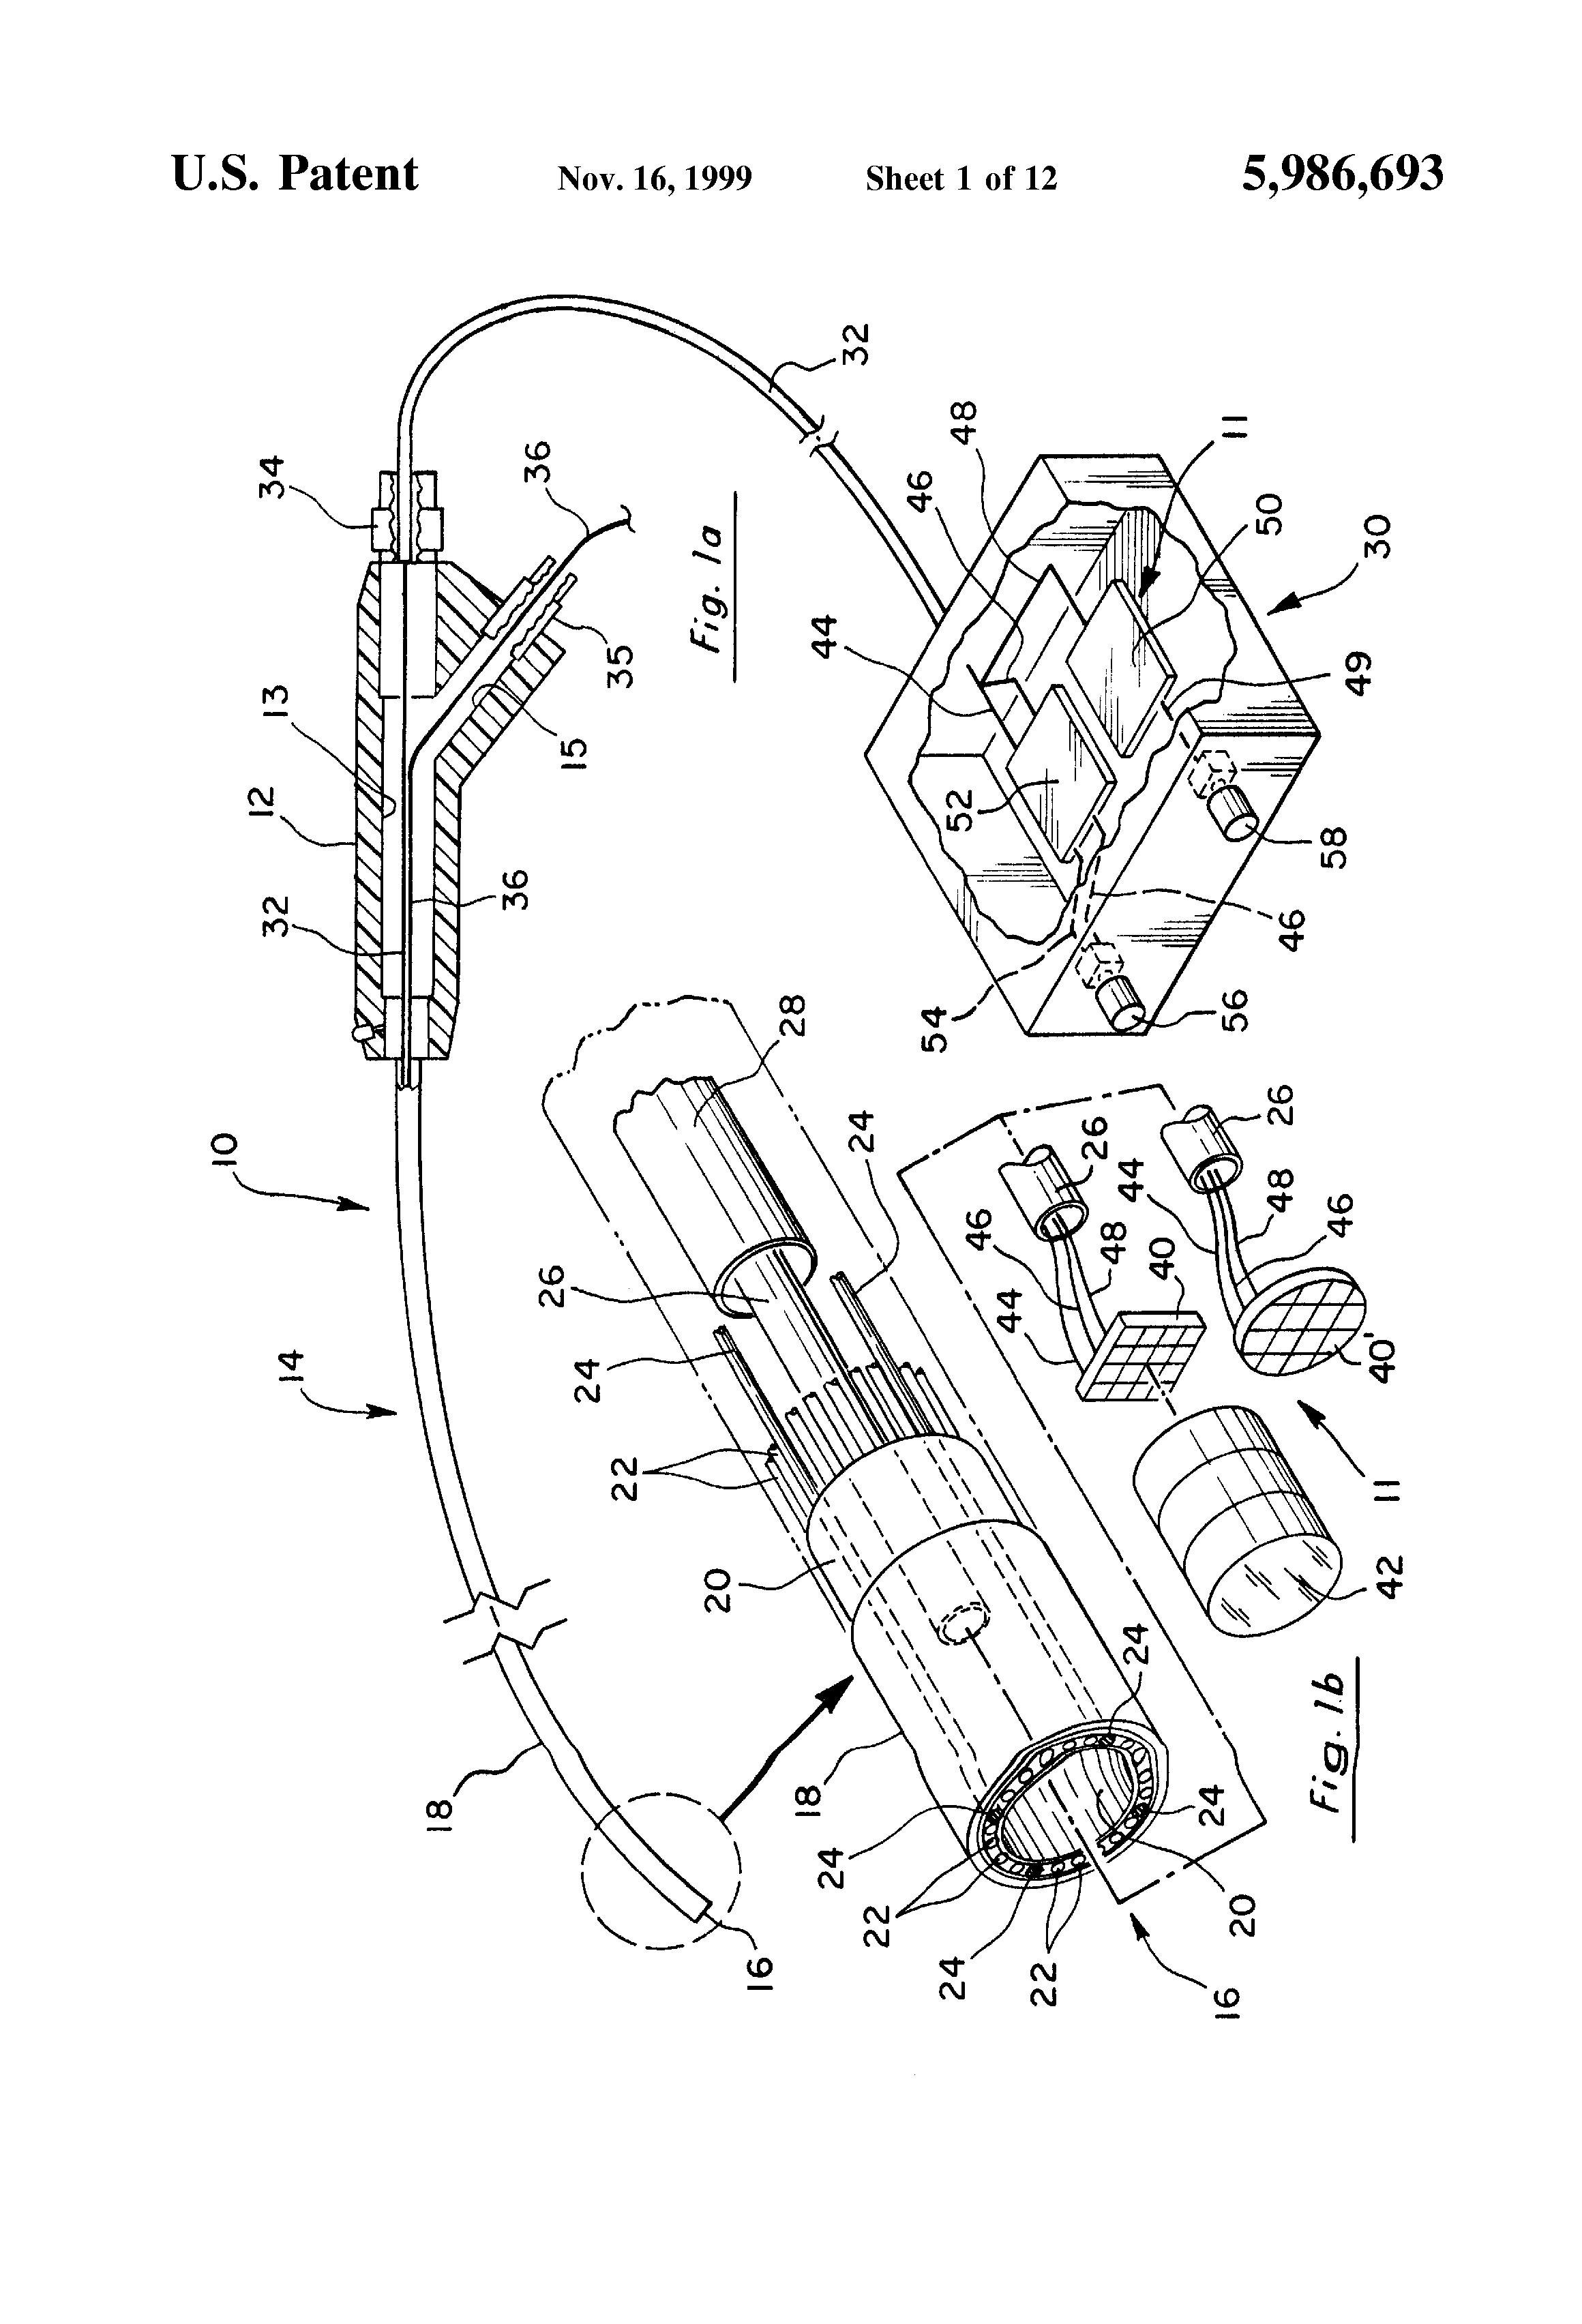 US5986693 likewise Schemview as well 2000 Chevy Blazer Heater Blend Door Actuator Where Is It together with Ir Laboratories New Home For Noble Peak moreover Sine Alternating Wave. on transistor lens